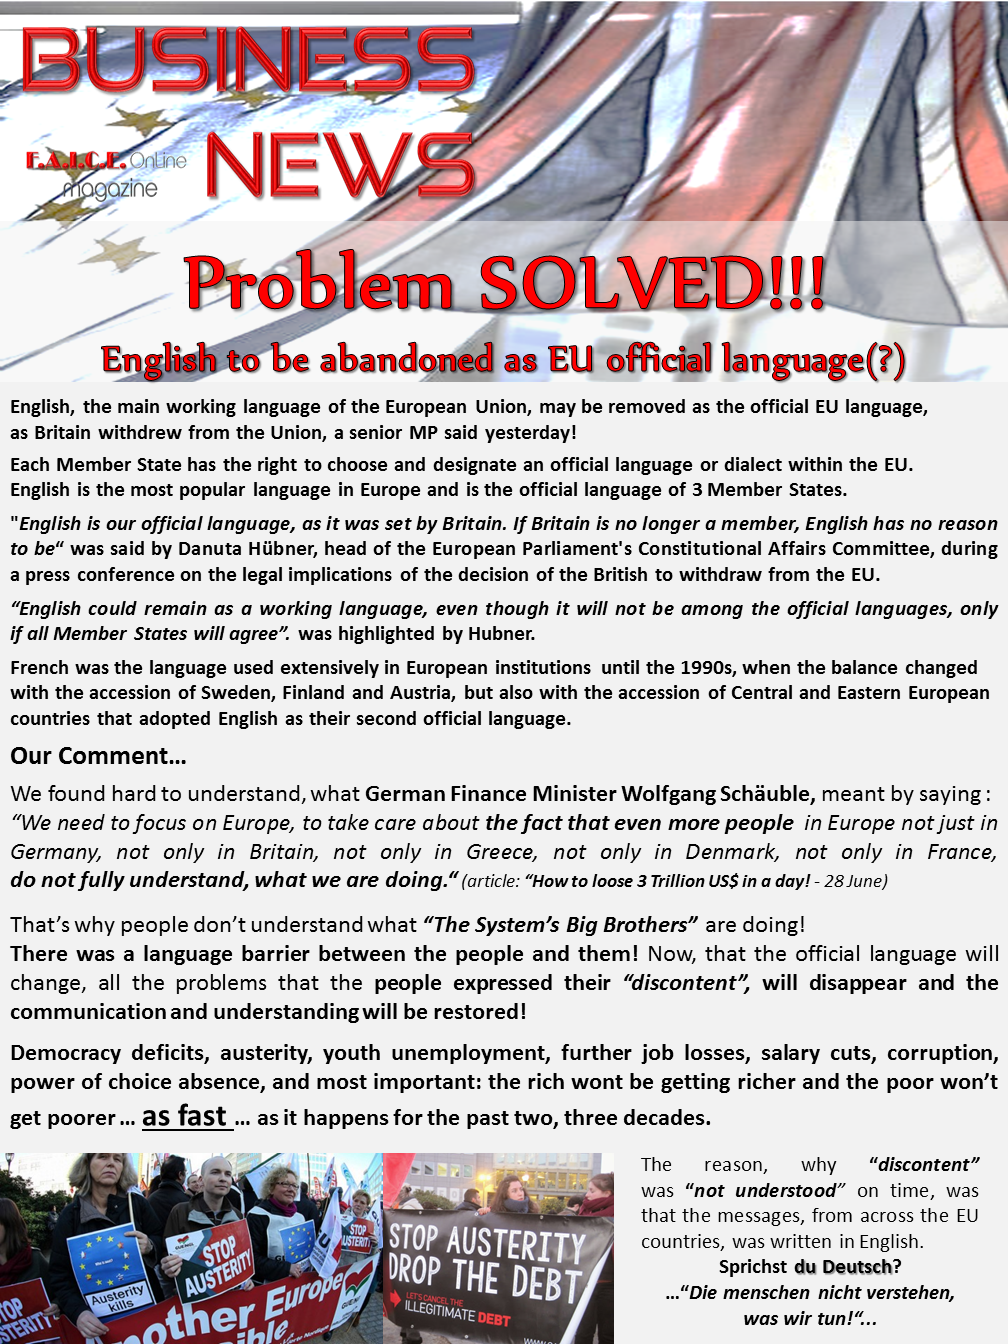 English is the problem?